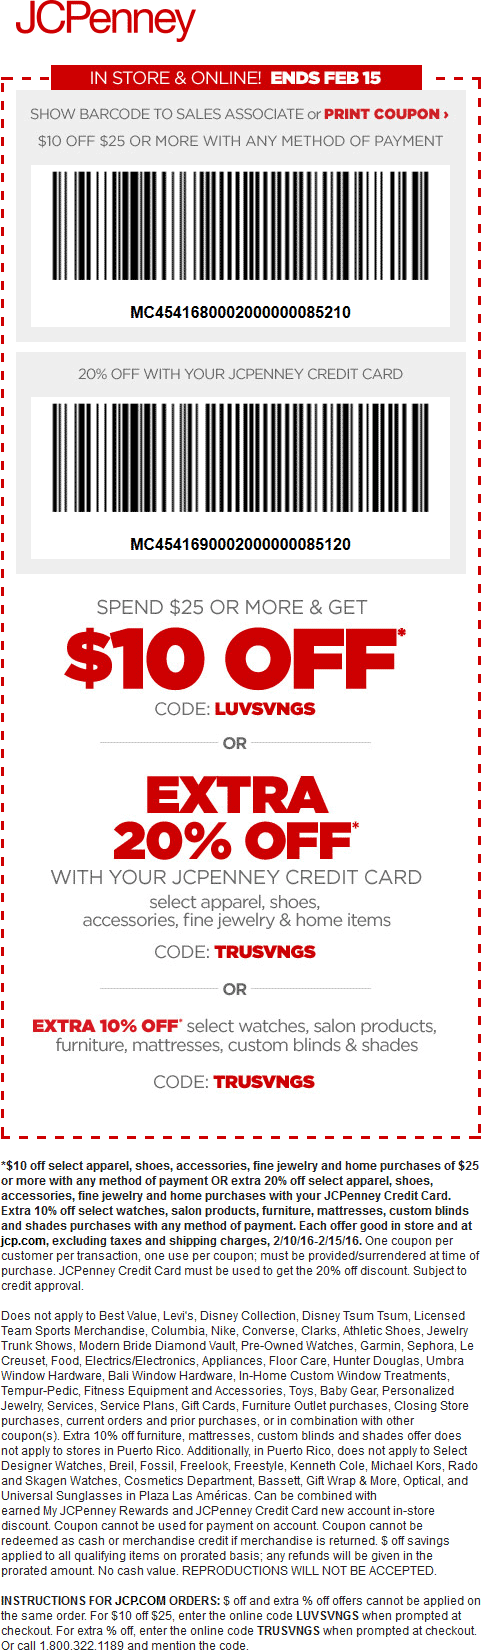 JCPenney Coupon October 2019 $10 off $25 at JCPenney, or online via promo code LUVSVNGS